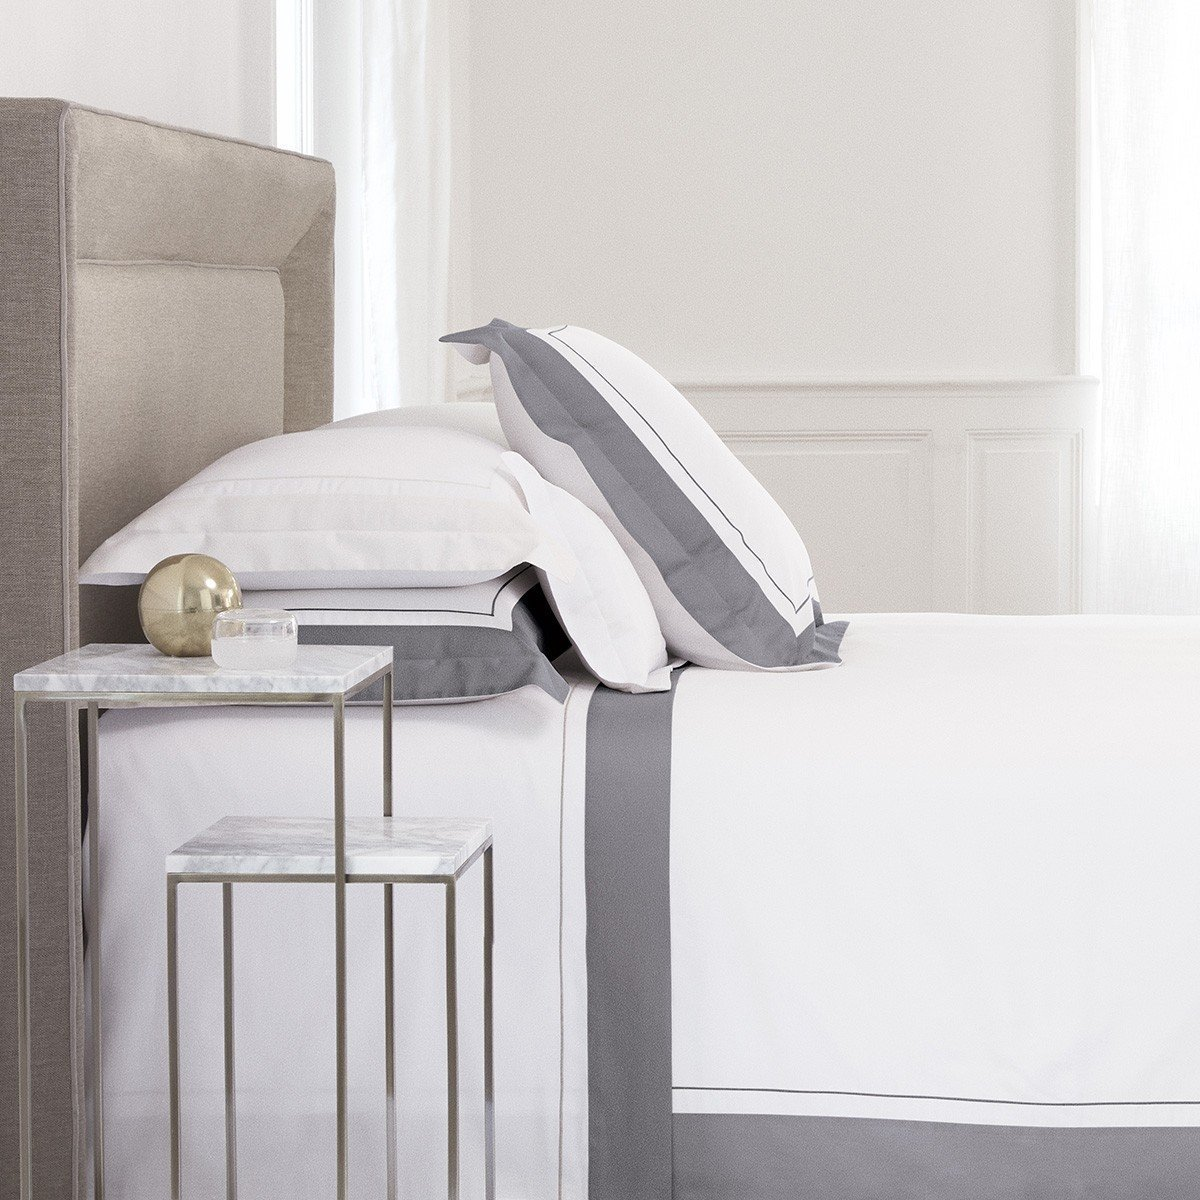 Lutece Platine Bedding by Yves Delorme | Fig Linens - Cotton, duvet cover, sheet, sham